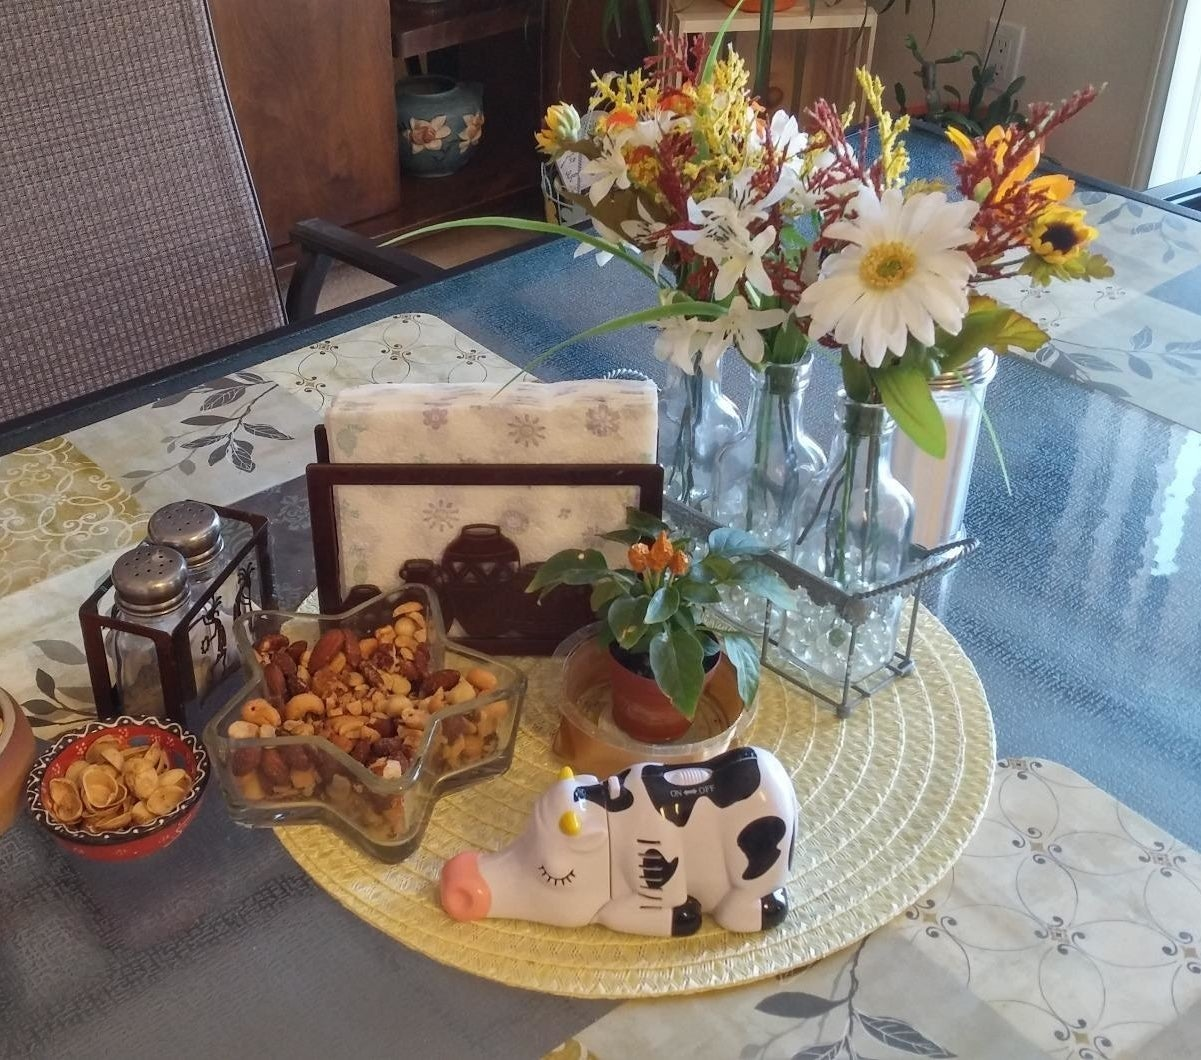 reviewer image of the wrapables cow mini tabletop vacuum in the center of a dining table along with bowls of snacks, napkins, and a salt and pepper shaker